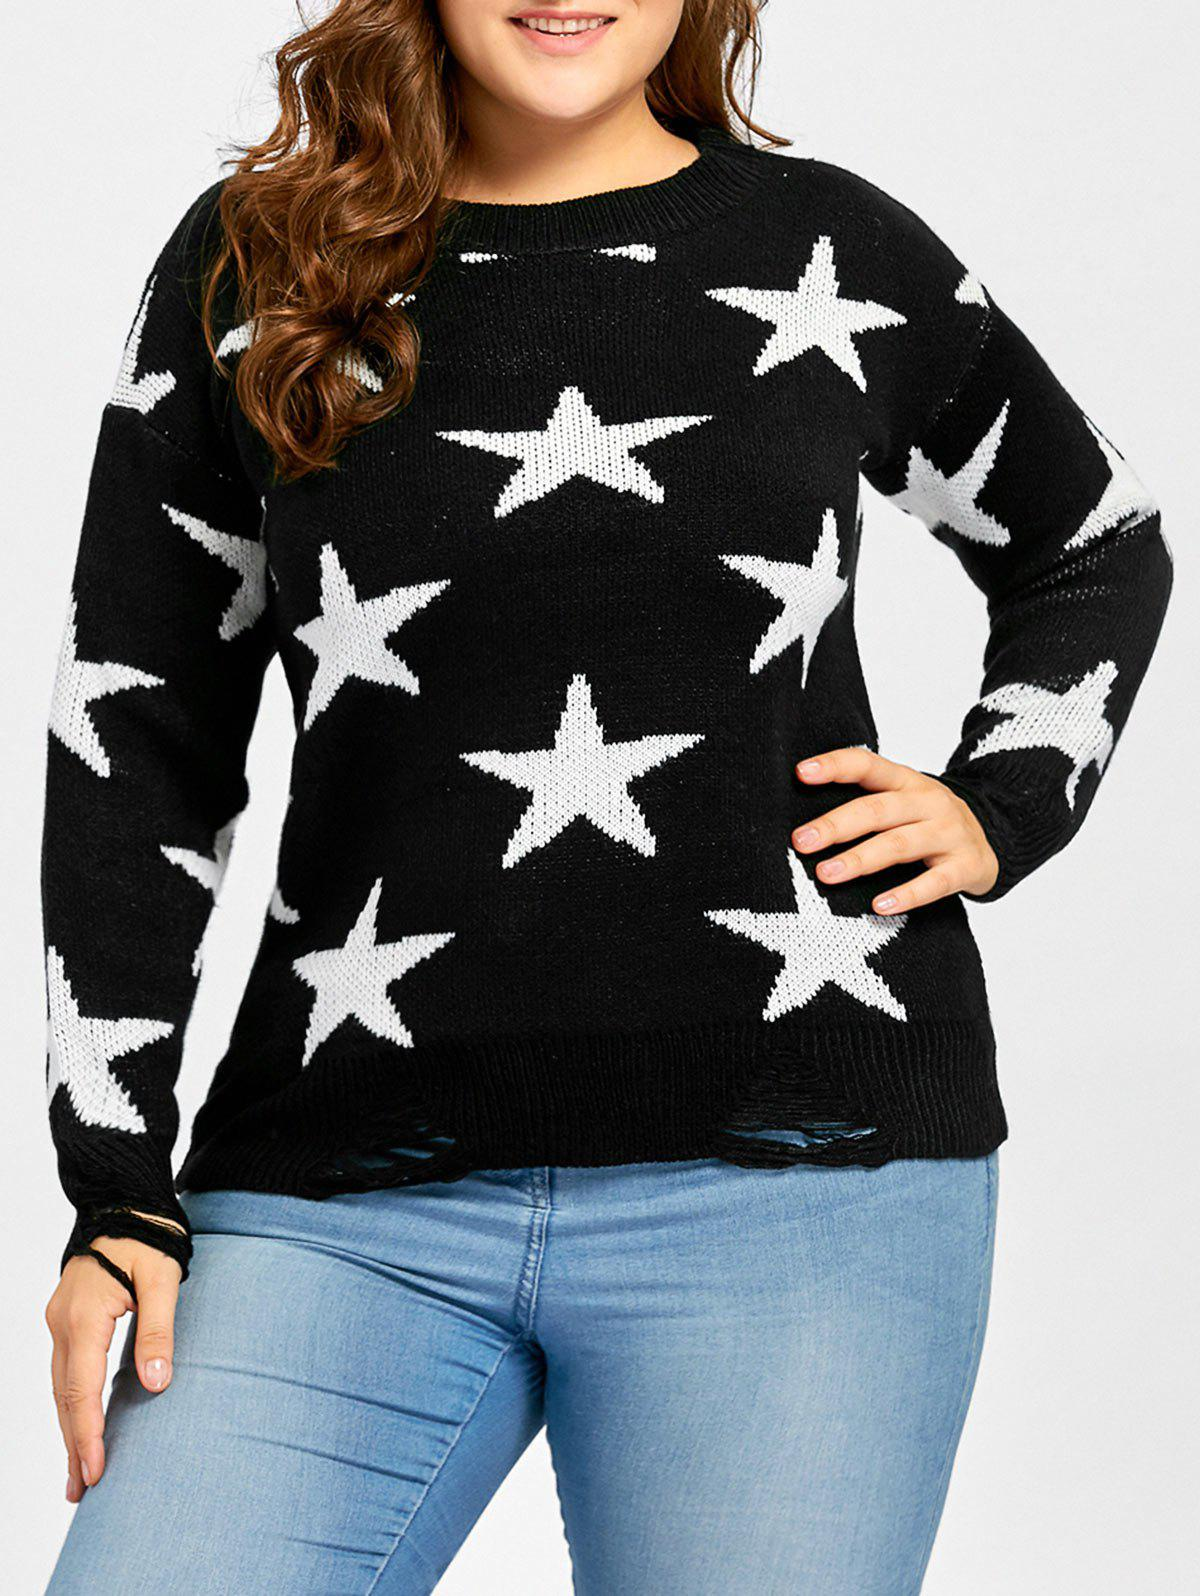 Plus Size Star Jacquard Destroyed SweaterWOMEN<br><br>Size: ONE SIZE; Color: BLACK; Type: Pullovers; Material: Acrylic,Polyester; Sleeve Length: Full; Collar: Crew Neck; Style: Fashion; Season: Fall; Pattern Type: Star; Weight: 0.4900kg; Package Contents: 1 x Sweater;